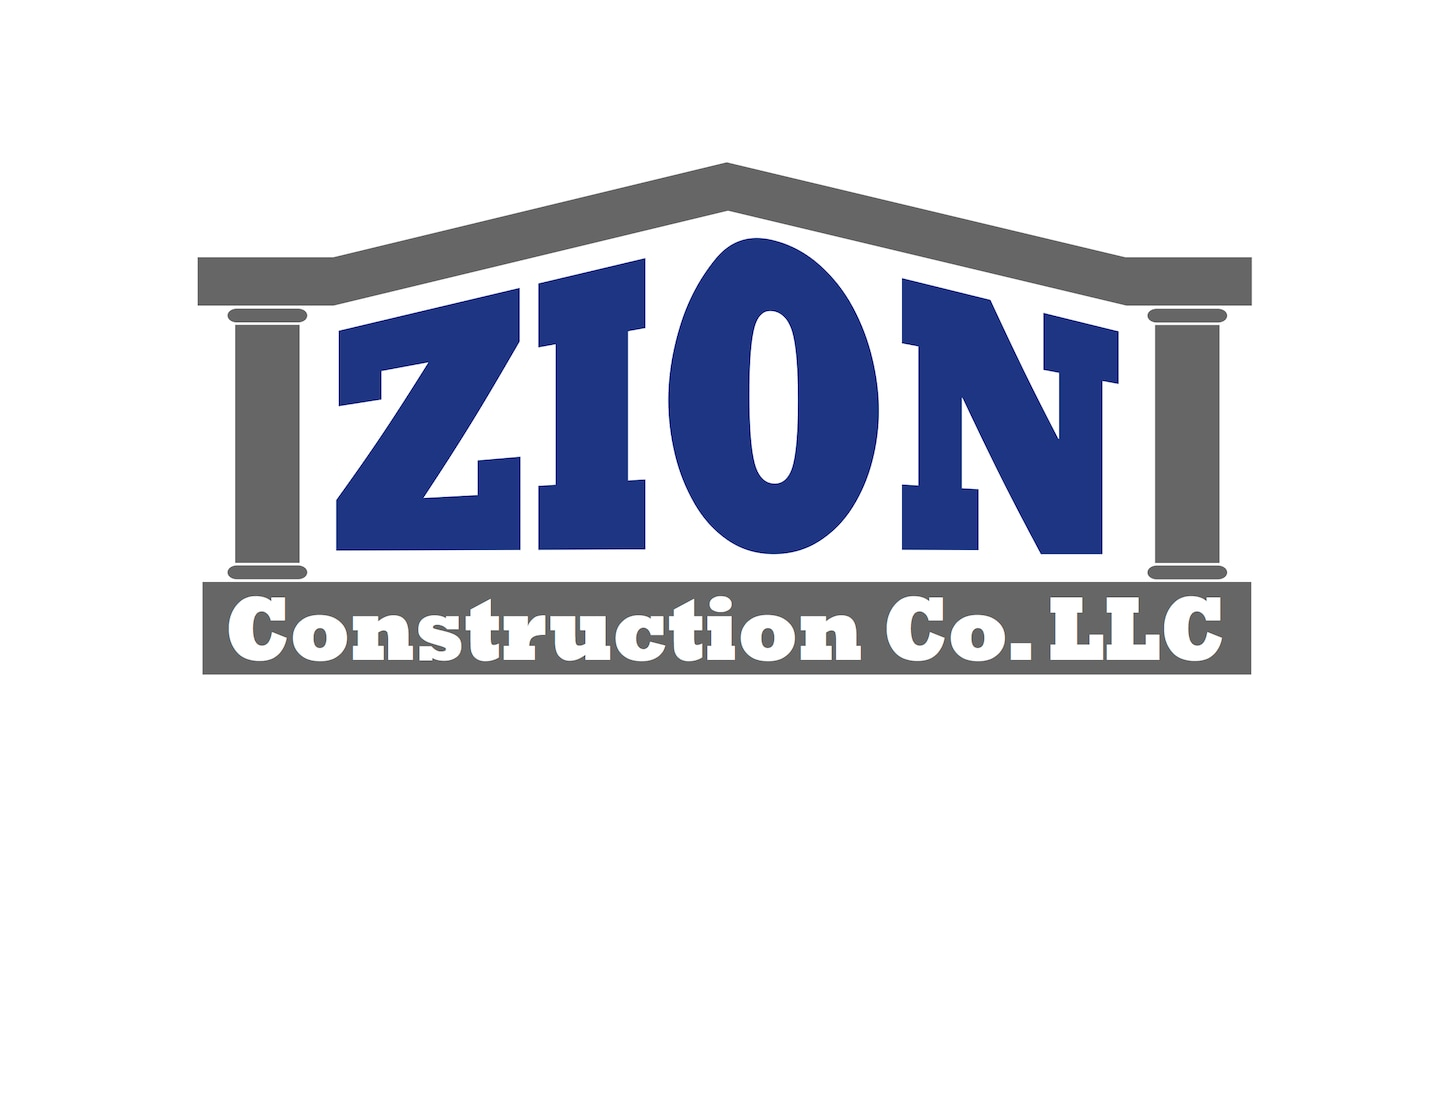 Zion Construction Company, LLC